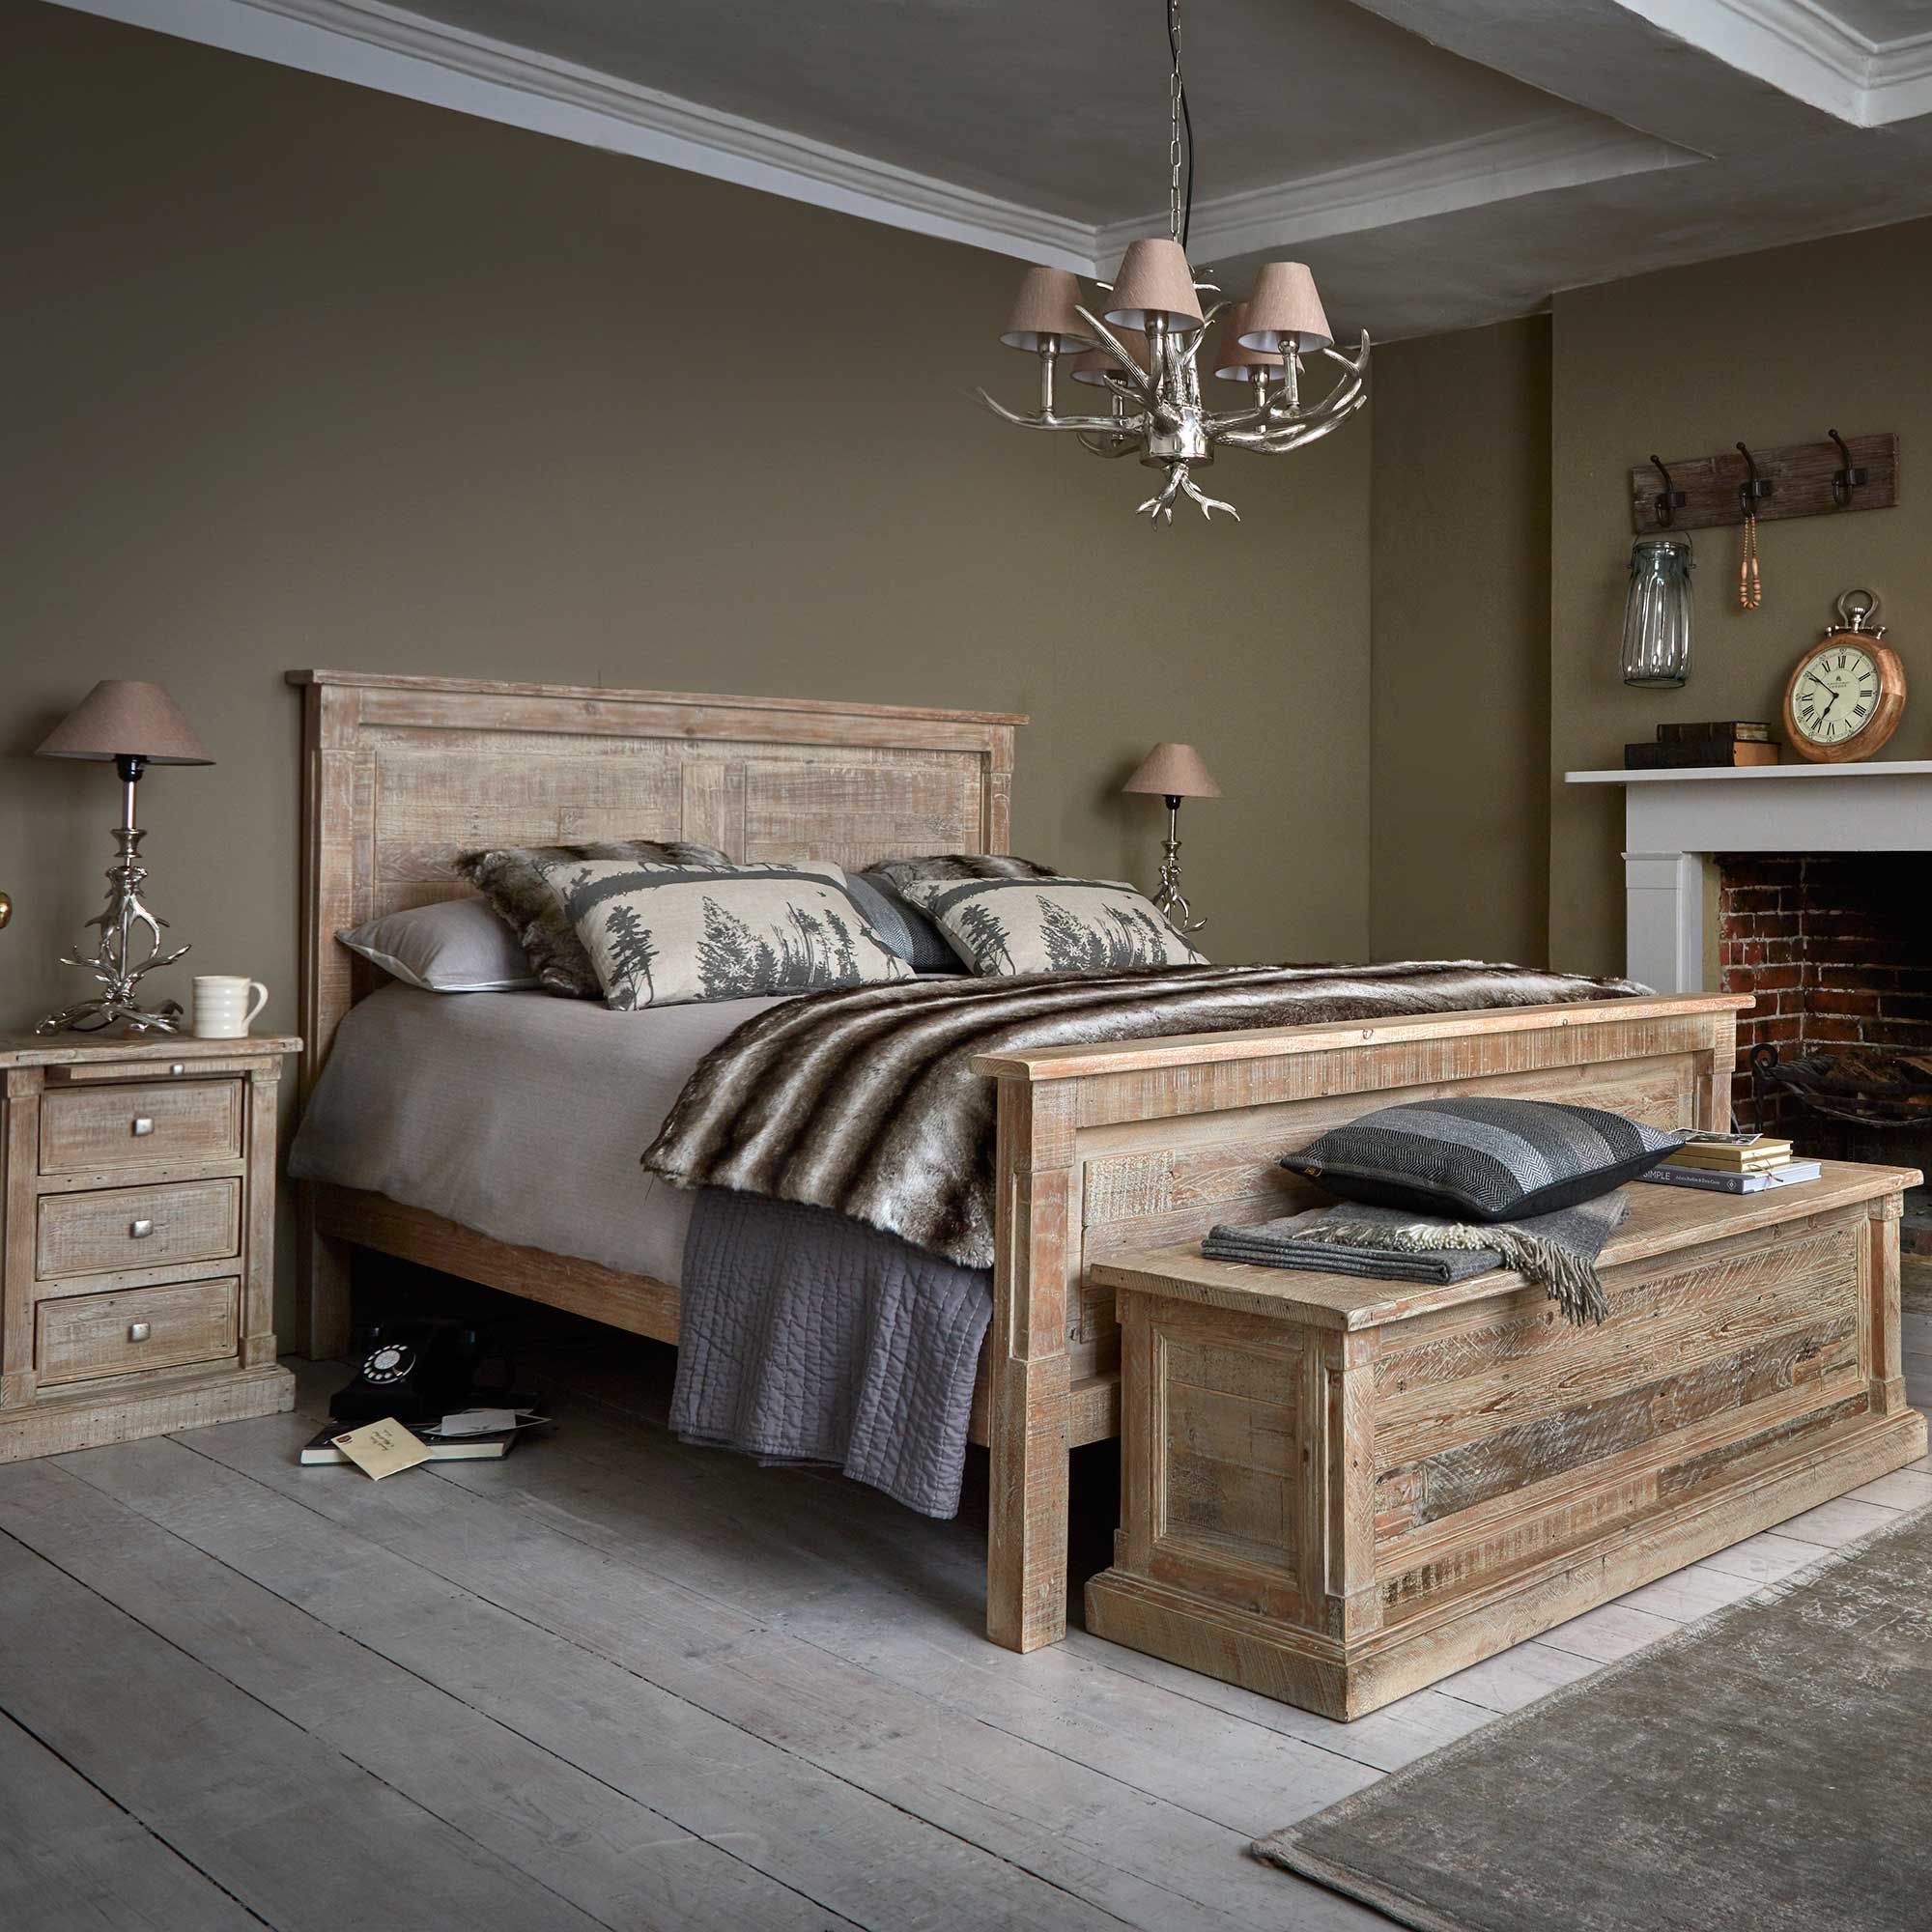 The Austen bedroom furniture range has a nautical, rustic feel